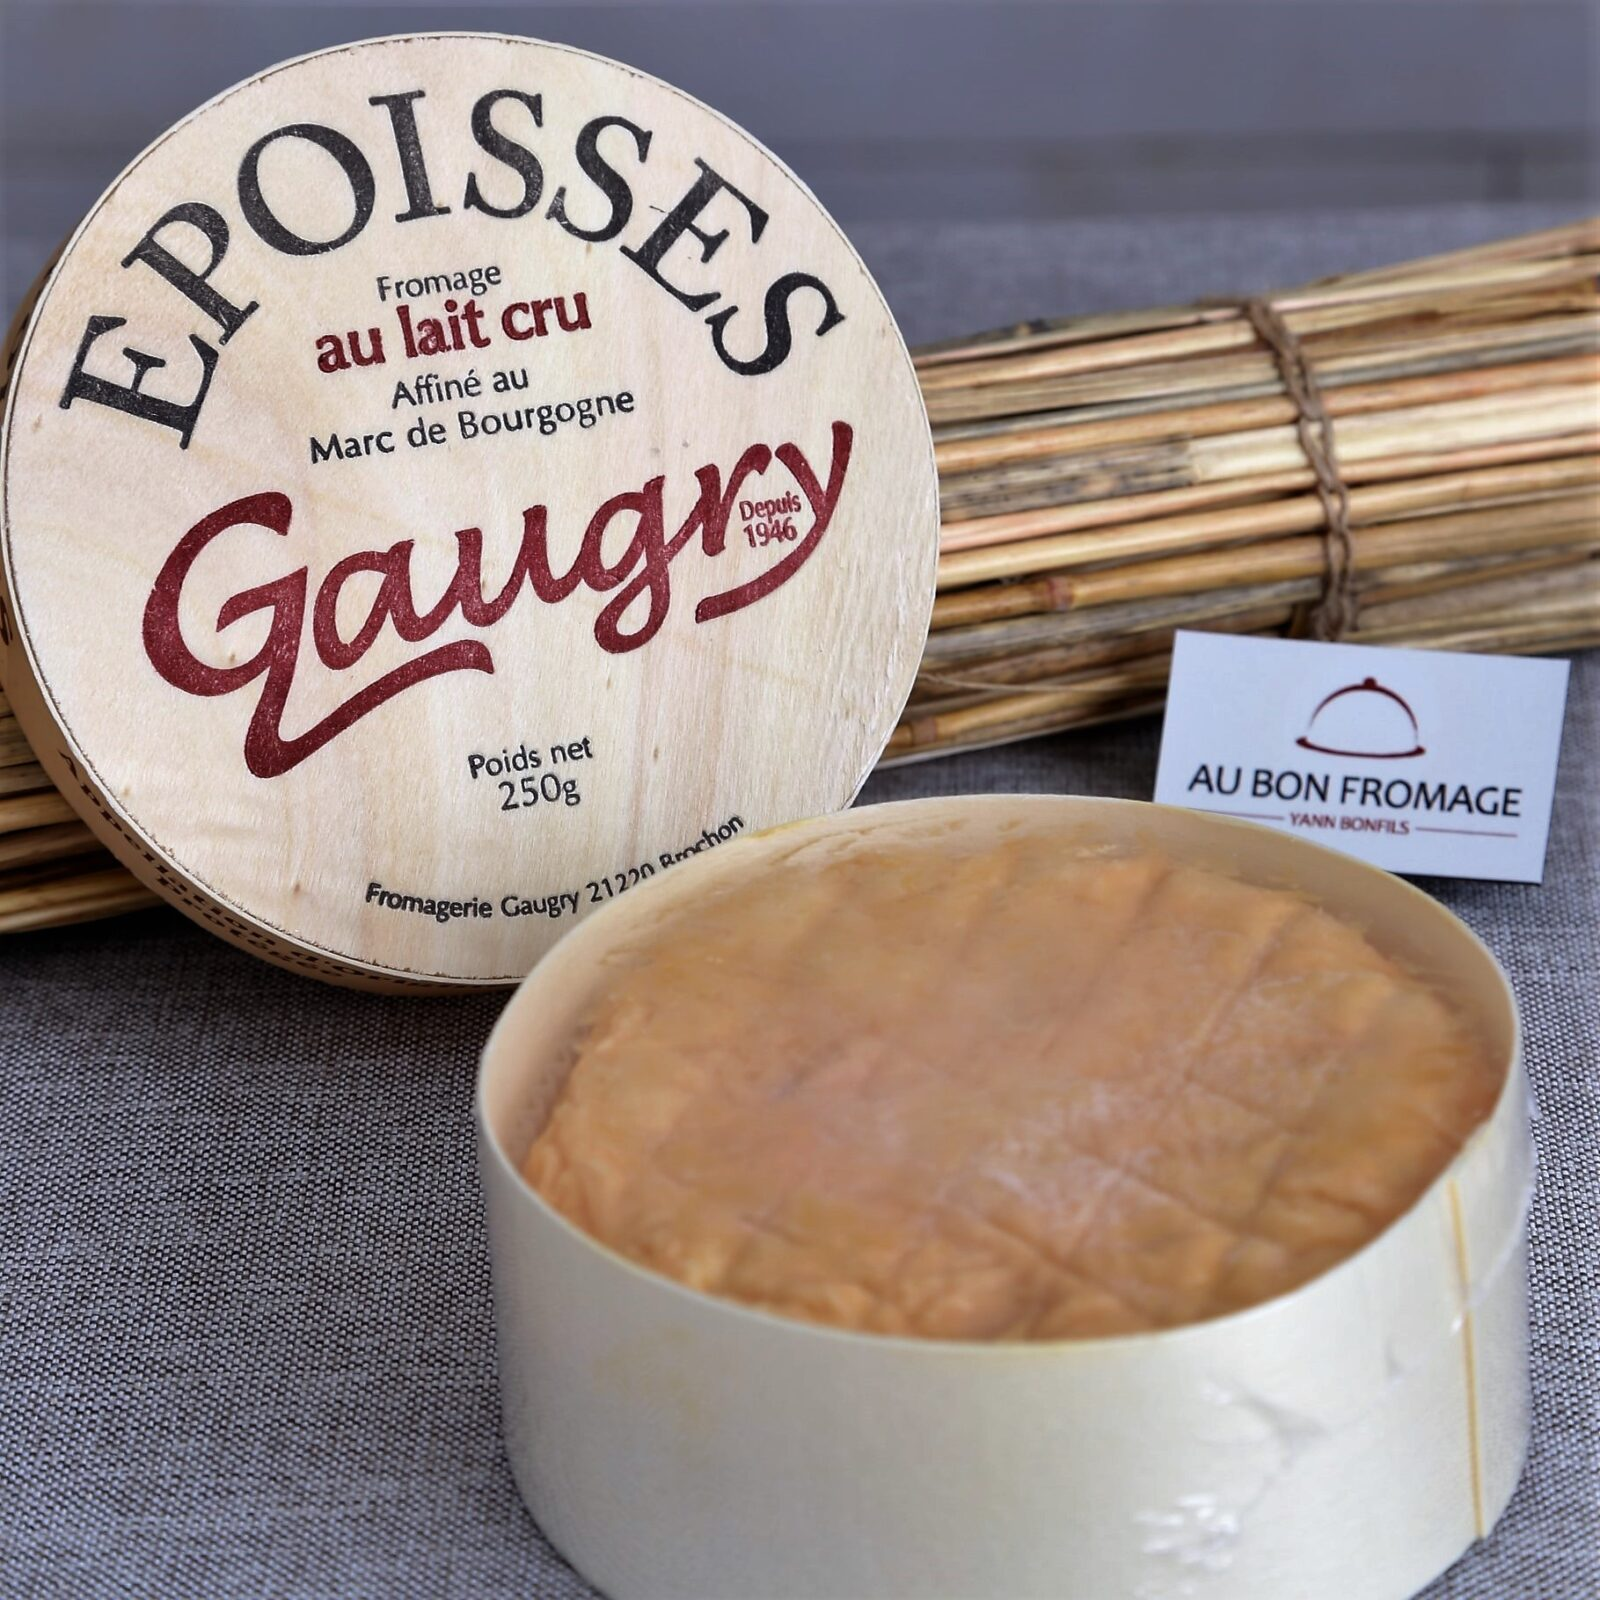 Epoisses aubonfromage.re Yann Bonfils Réunion (2)